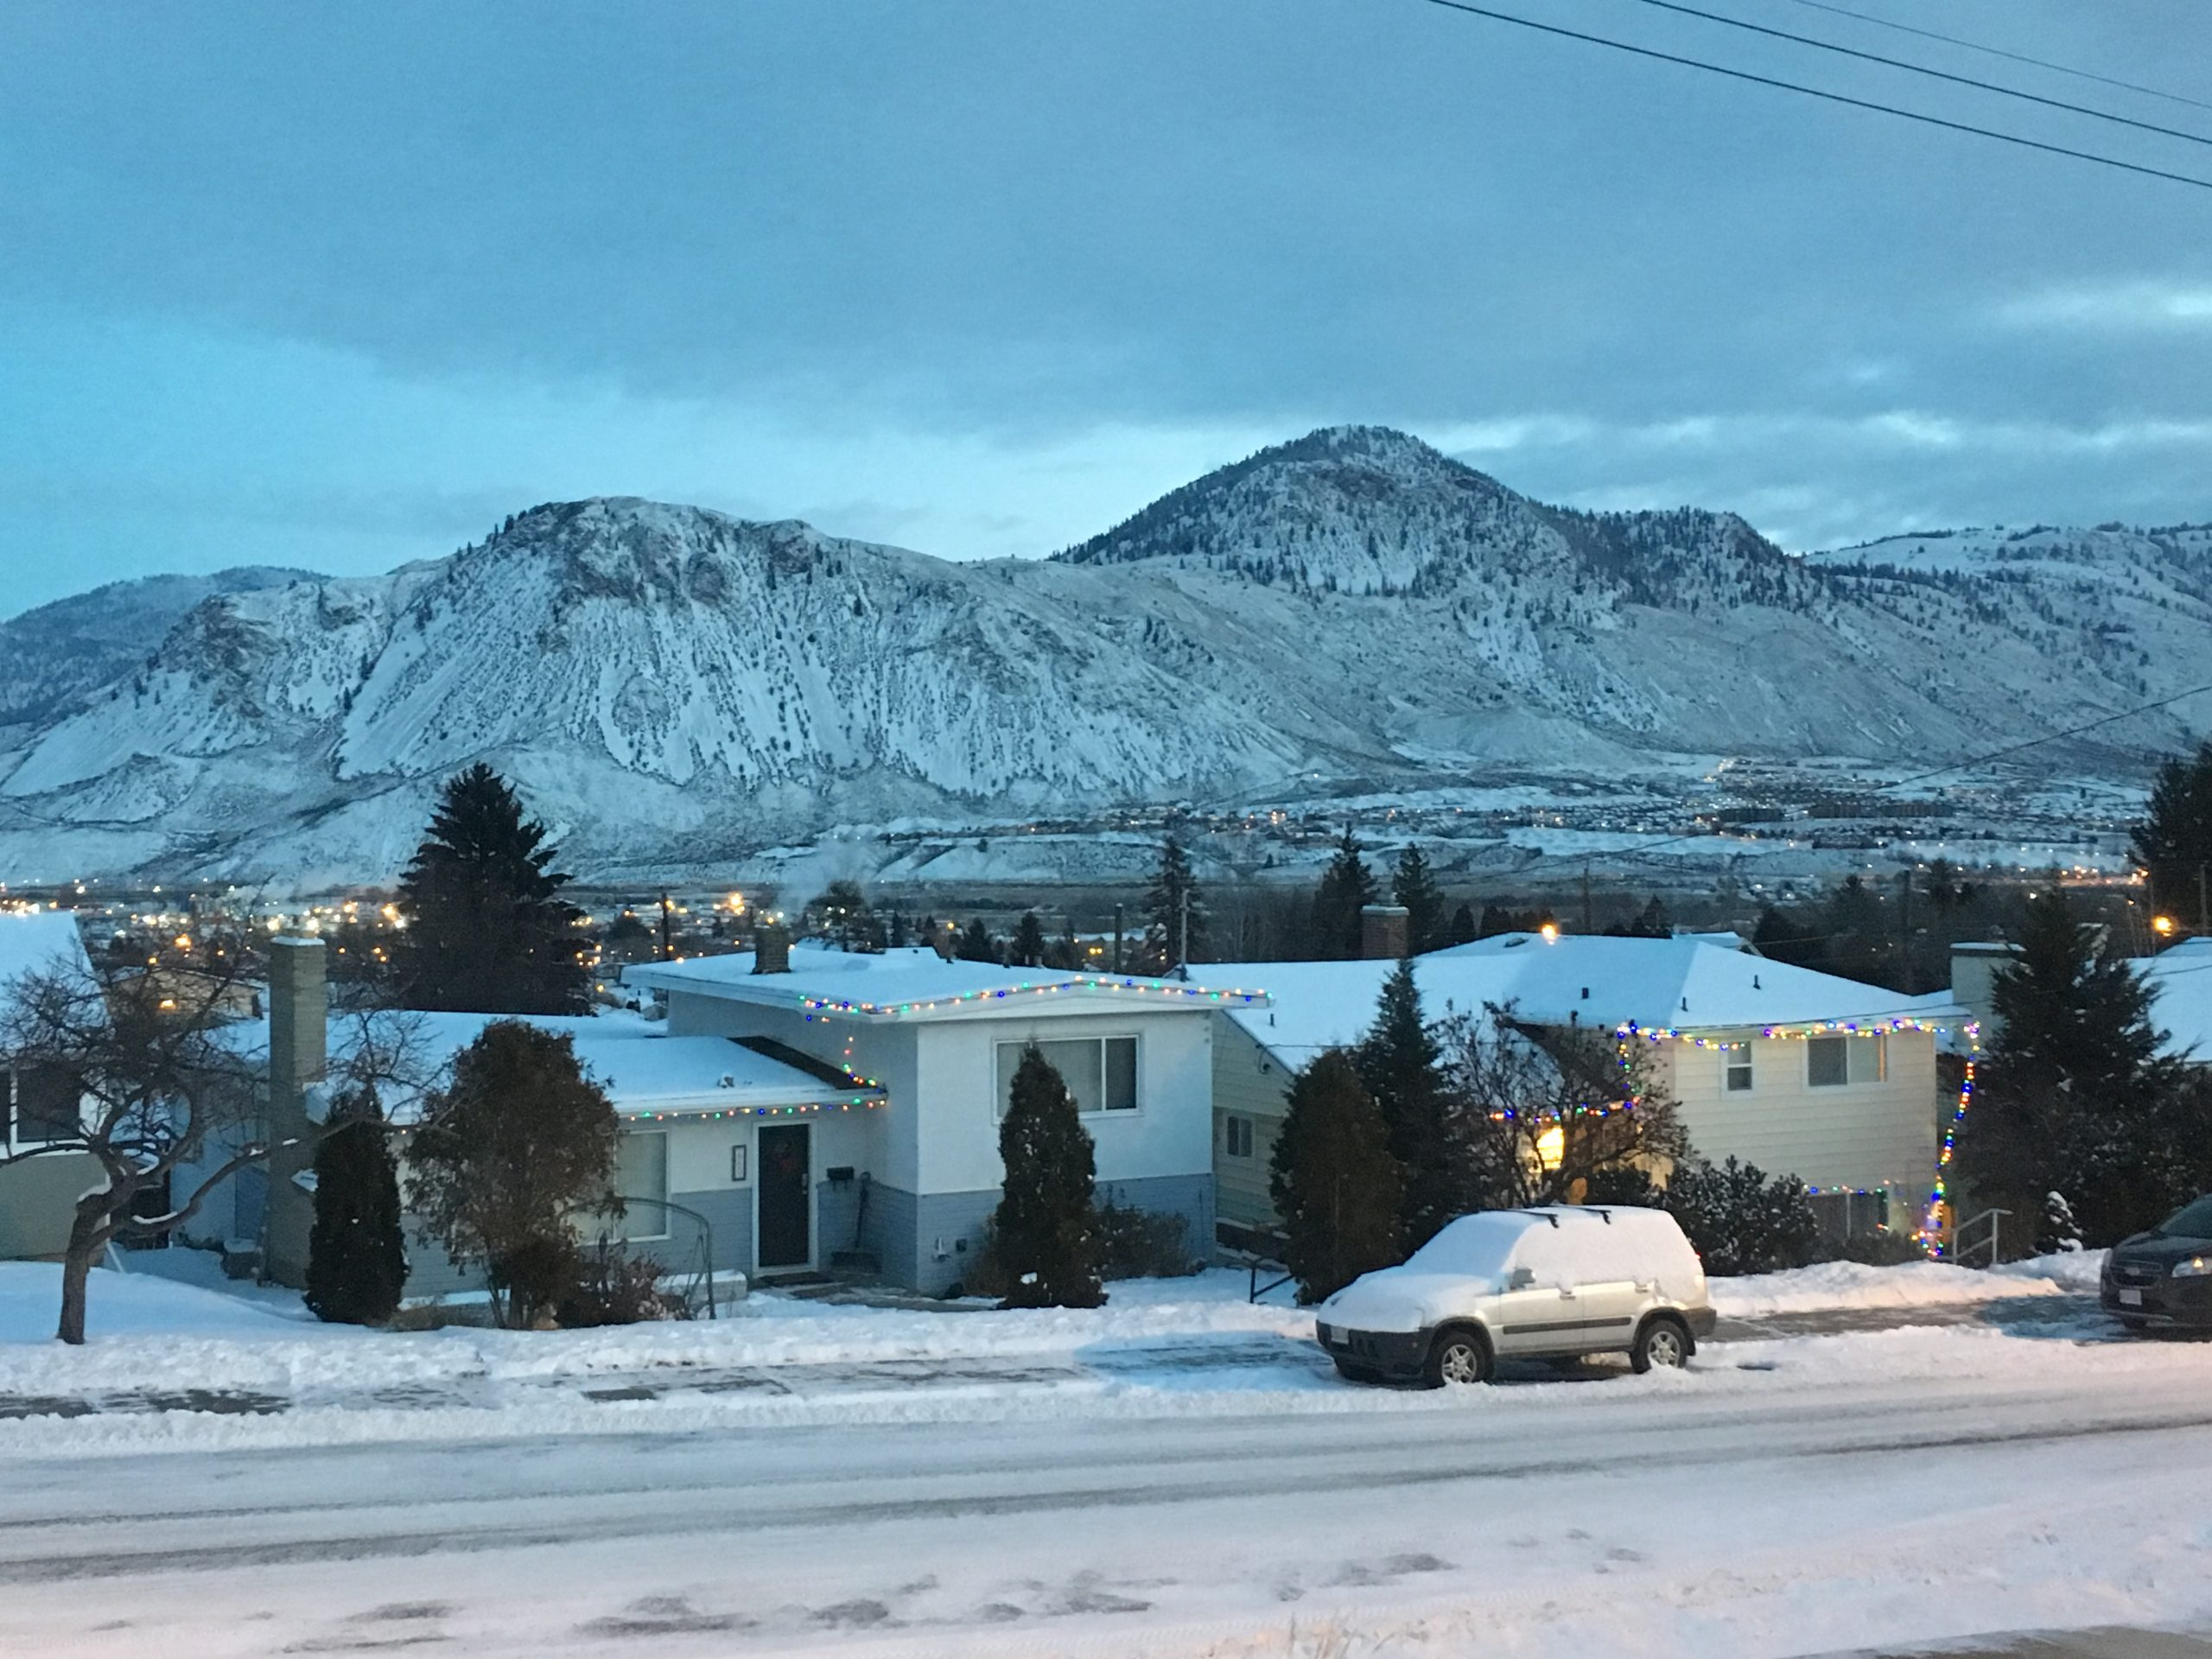 Clarity on the way around extreme cold shelter plans for Kamloops